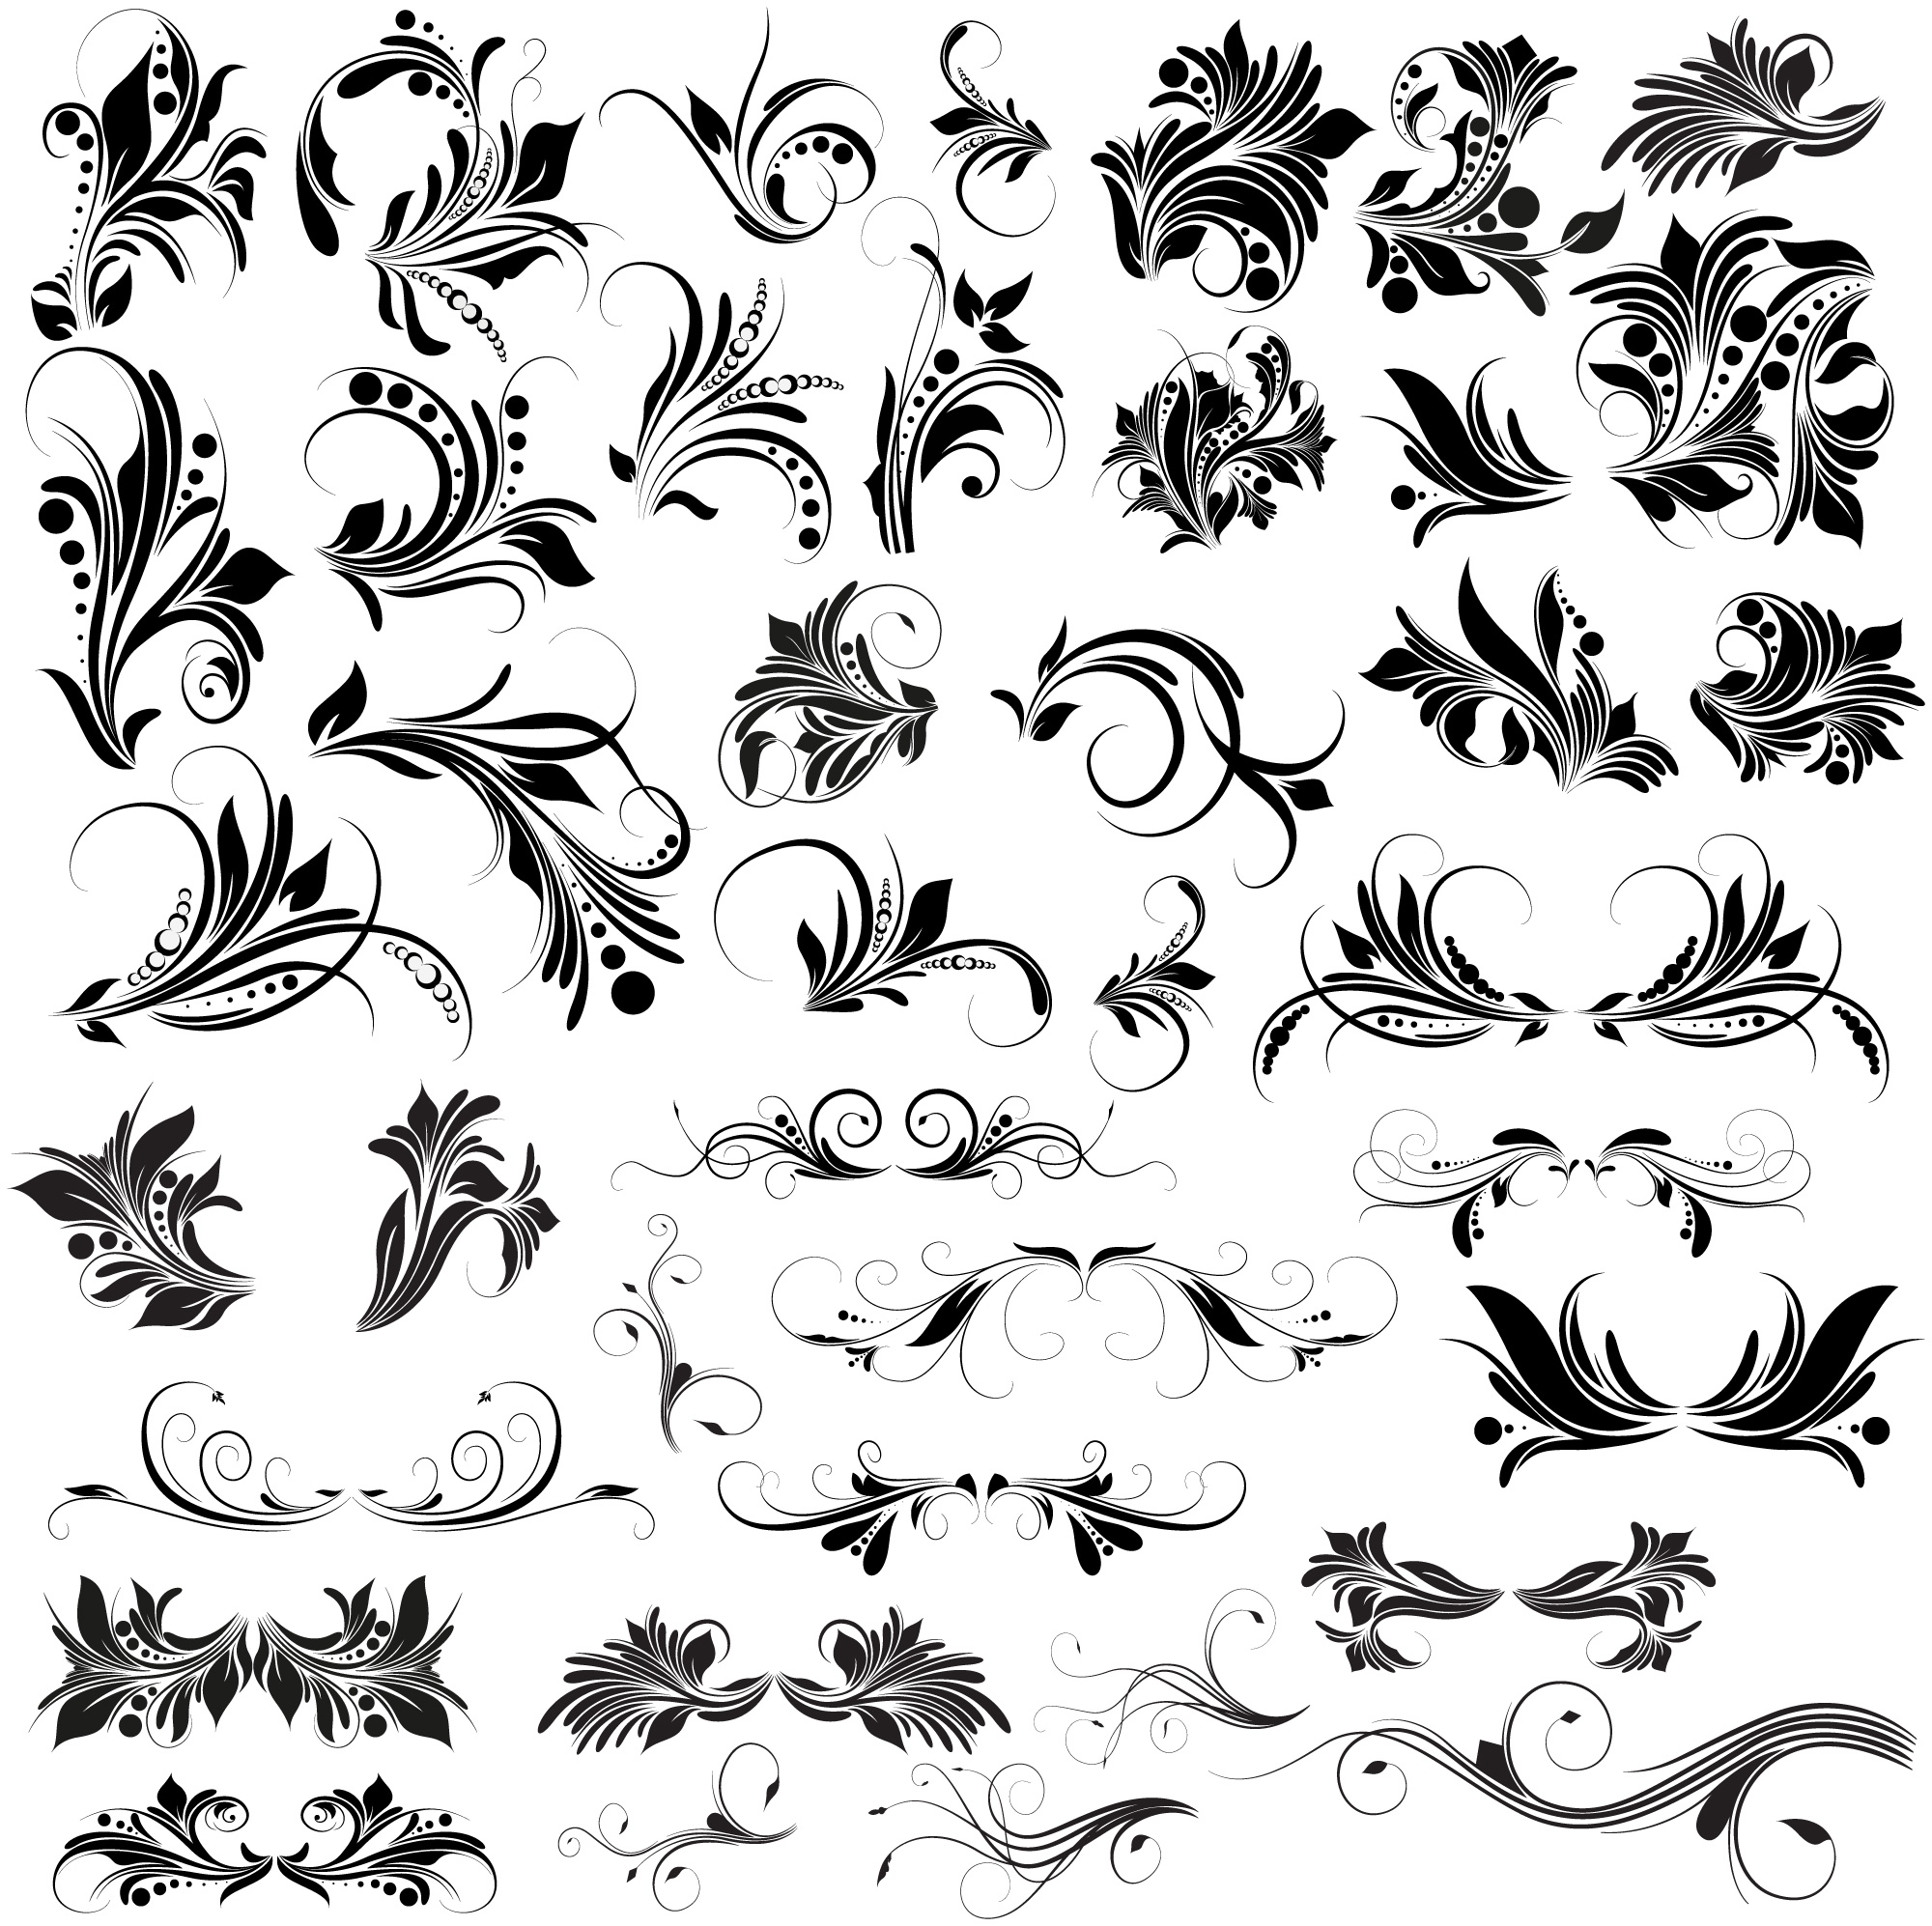 Floral Vectors, Brushes, PNG, Shapes & Pictures - Free ...